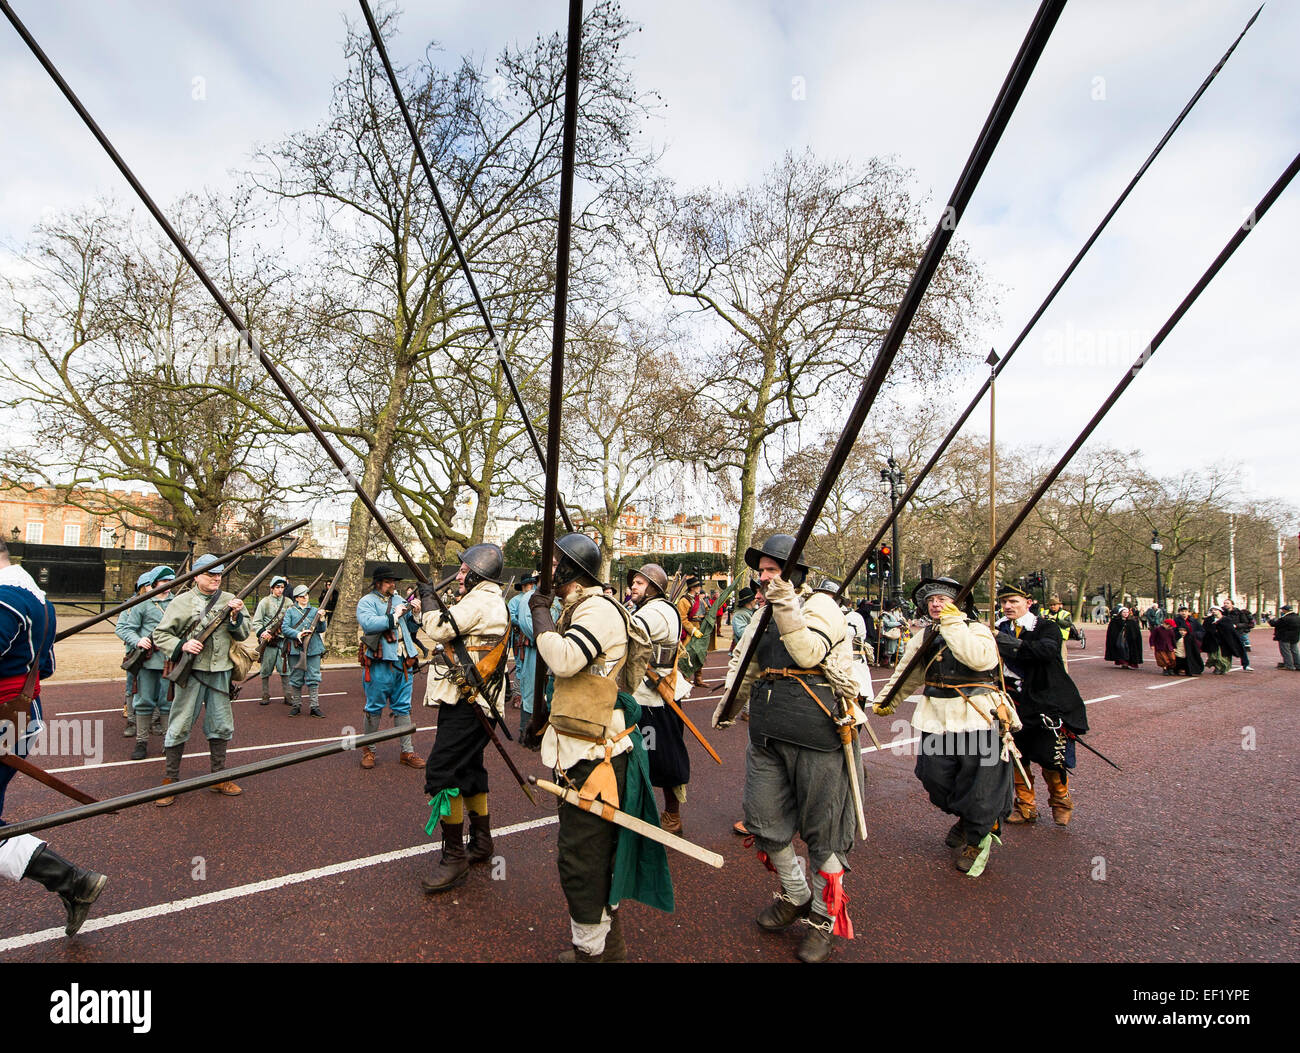 London, UK. 25th January, 2015. Every year Royalist members of the English Civil War Society assemble and - Stock Image